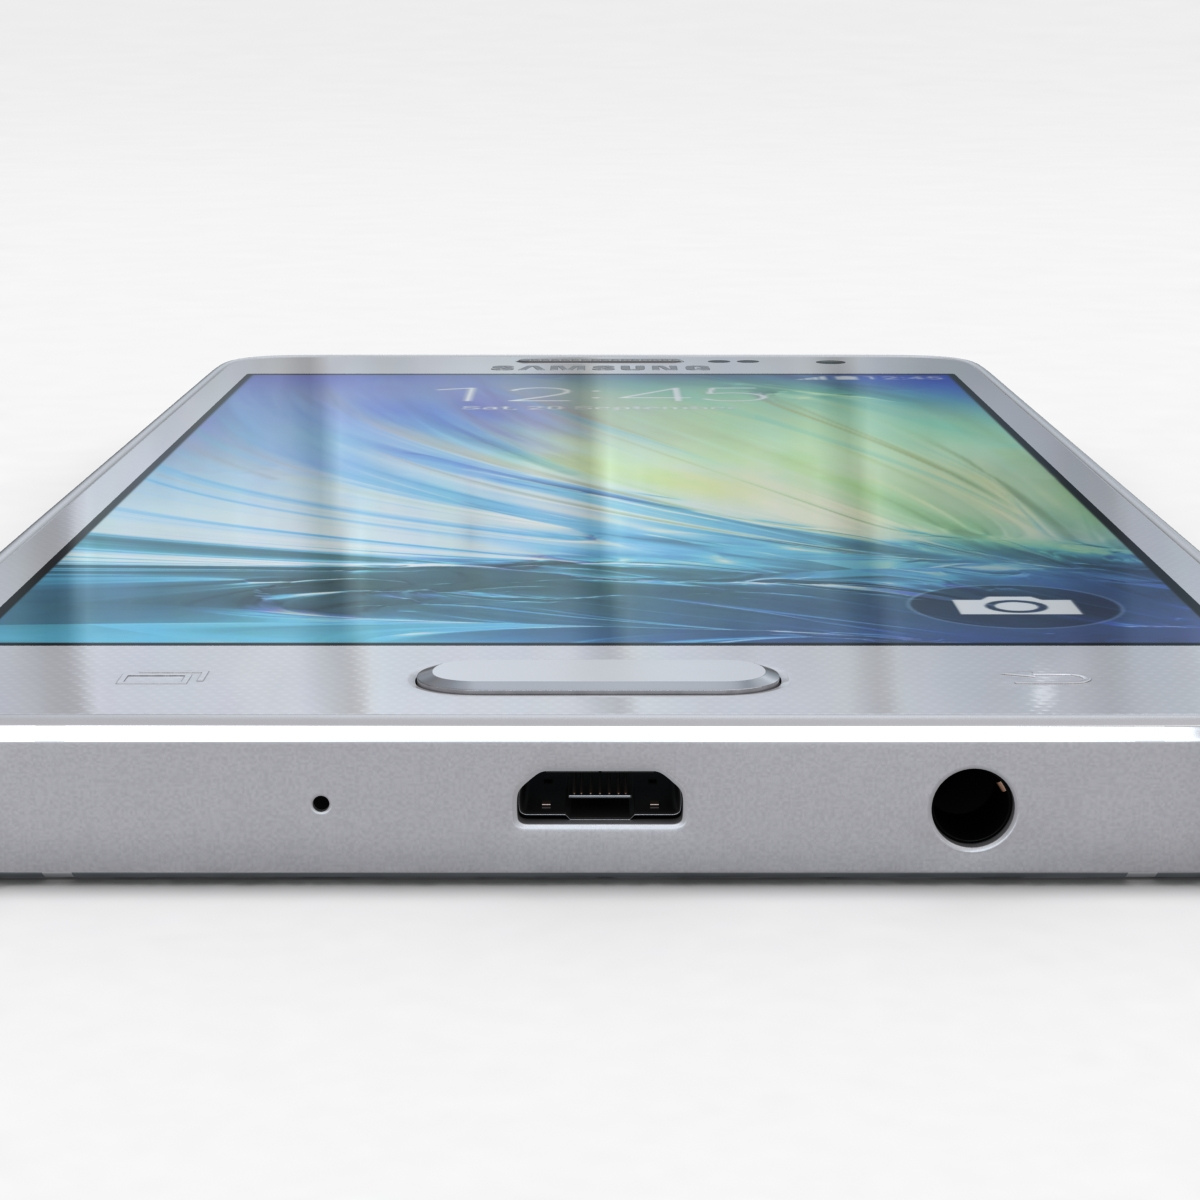 samsung galaxy a3 and a3 duos silver 3d model 3ds max fbx c4d obj 208317